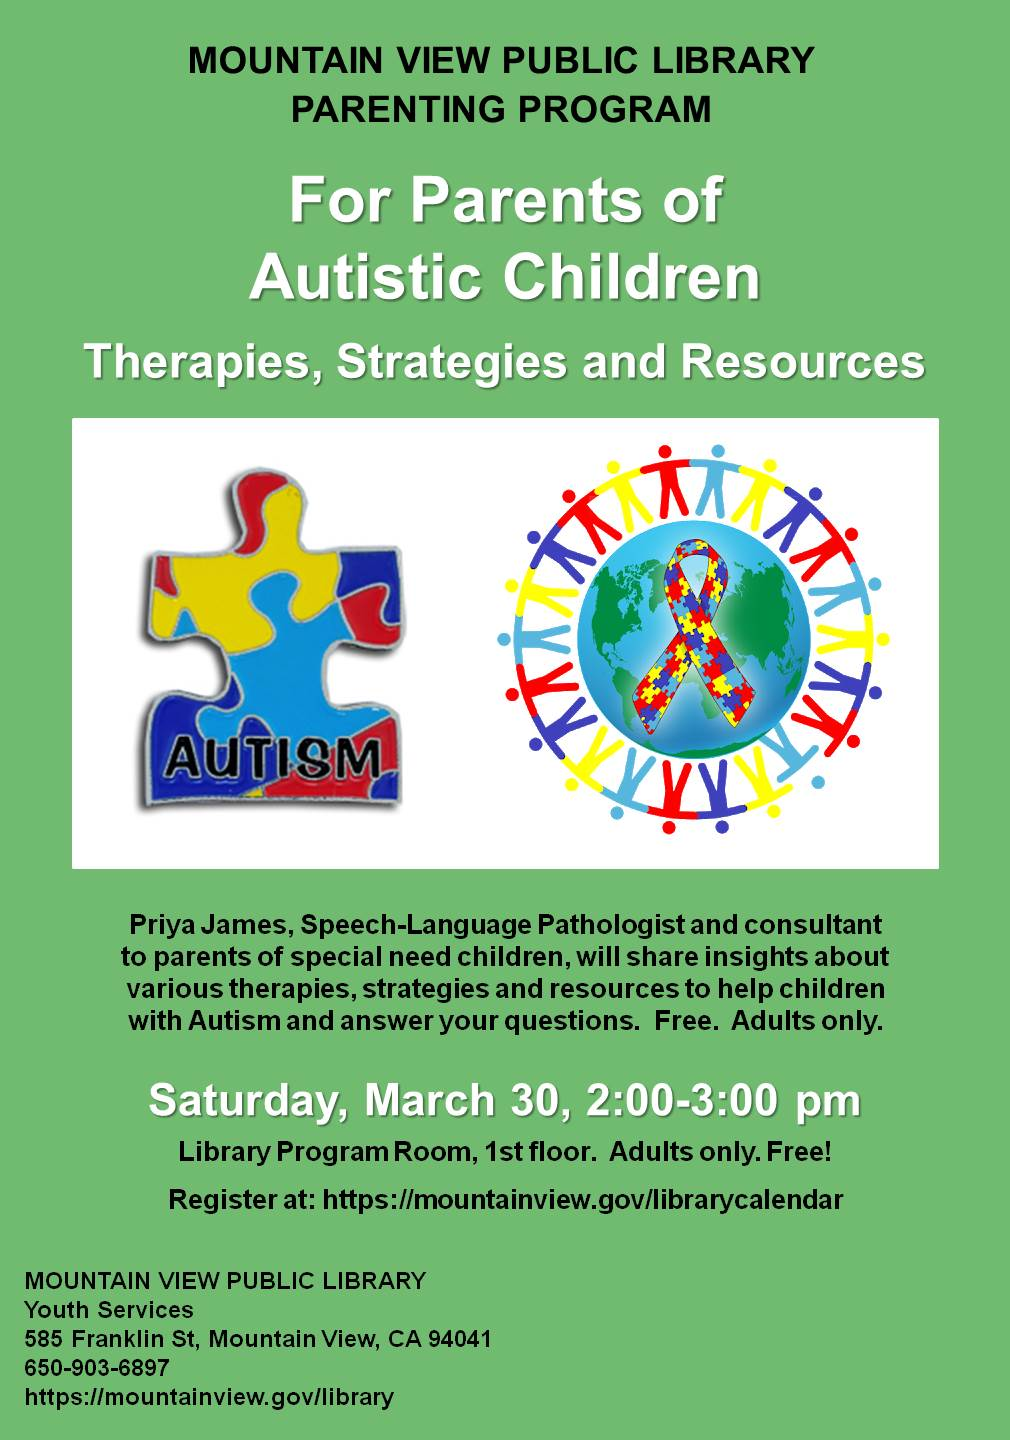 For Parents of Autistic Children: Therapies, Strategies and Resources